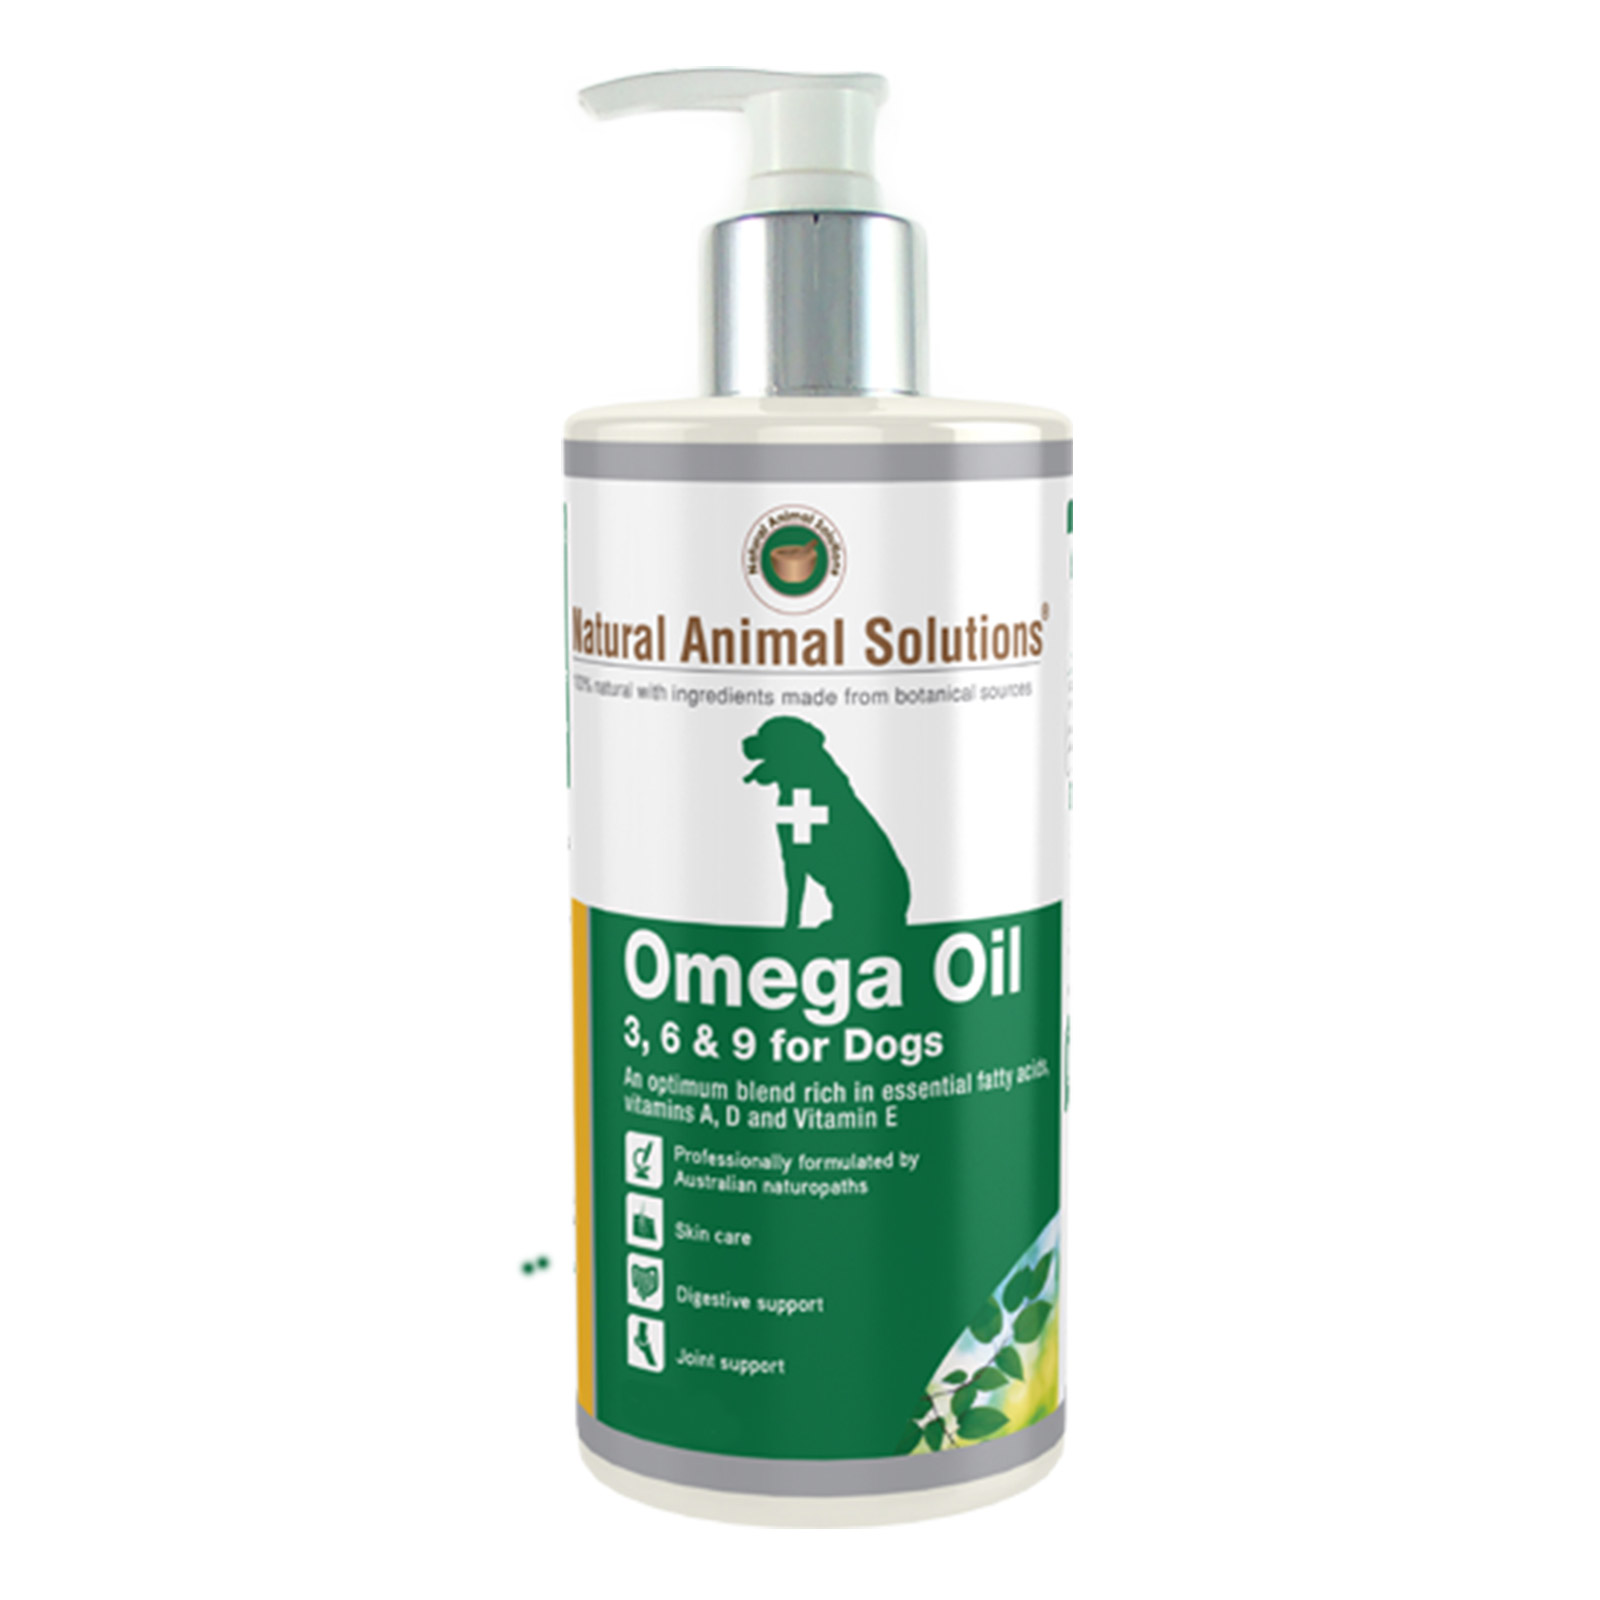 Natural Animal Solutions Omega 3,6 & 9 Oil for Horses & Dogs